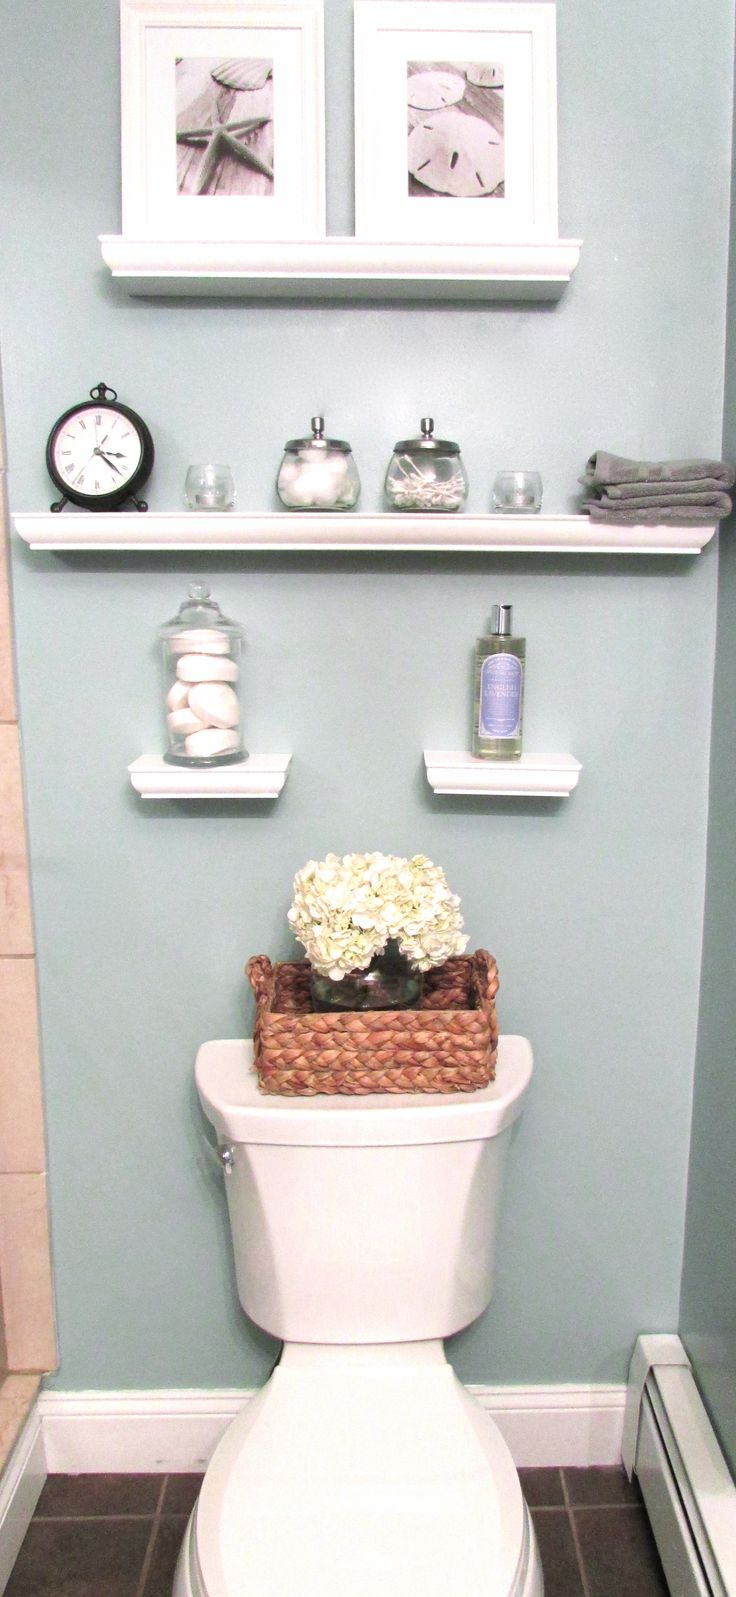 best 25 small bathroom inspiration ideas on pinterest small best 25 small bathroom inspiration ideas on pinterest small bathroom decorating bathroom organization and bathroom vanity decor